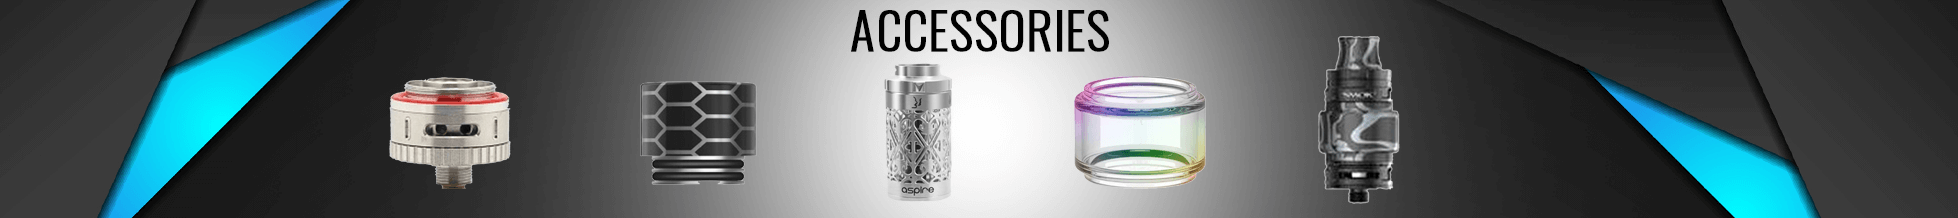 accessories-category-banner.png